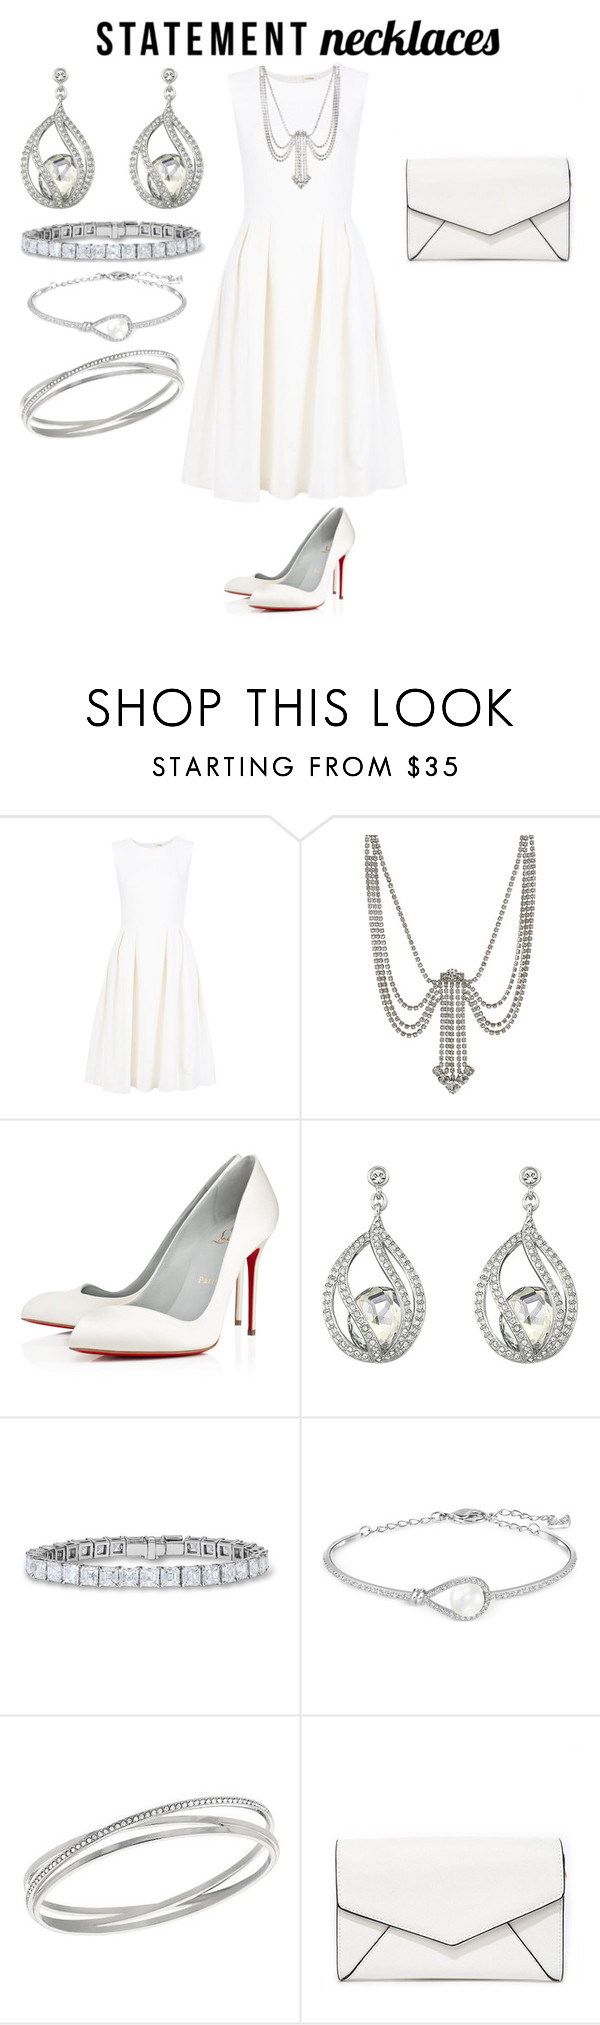 """Statement Necklaces"" by tessa-moon on Polyvore featuring ADAM, Marc Jacobs, Christian Louboutin, Swarovski, LULUS and statementnecklaces"